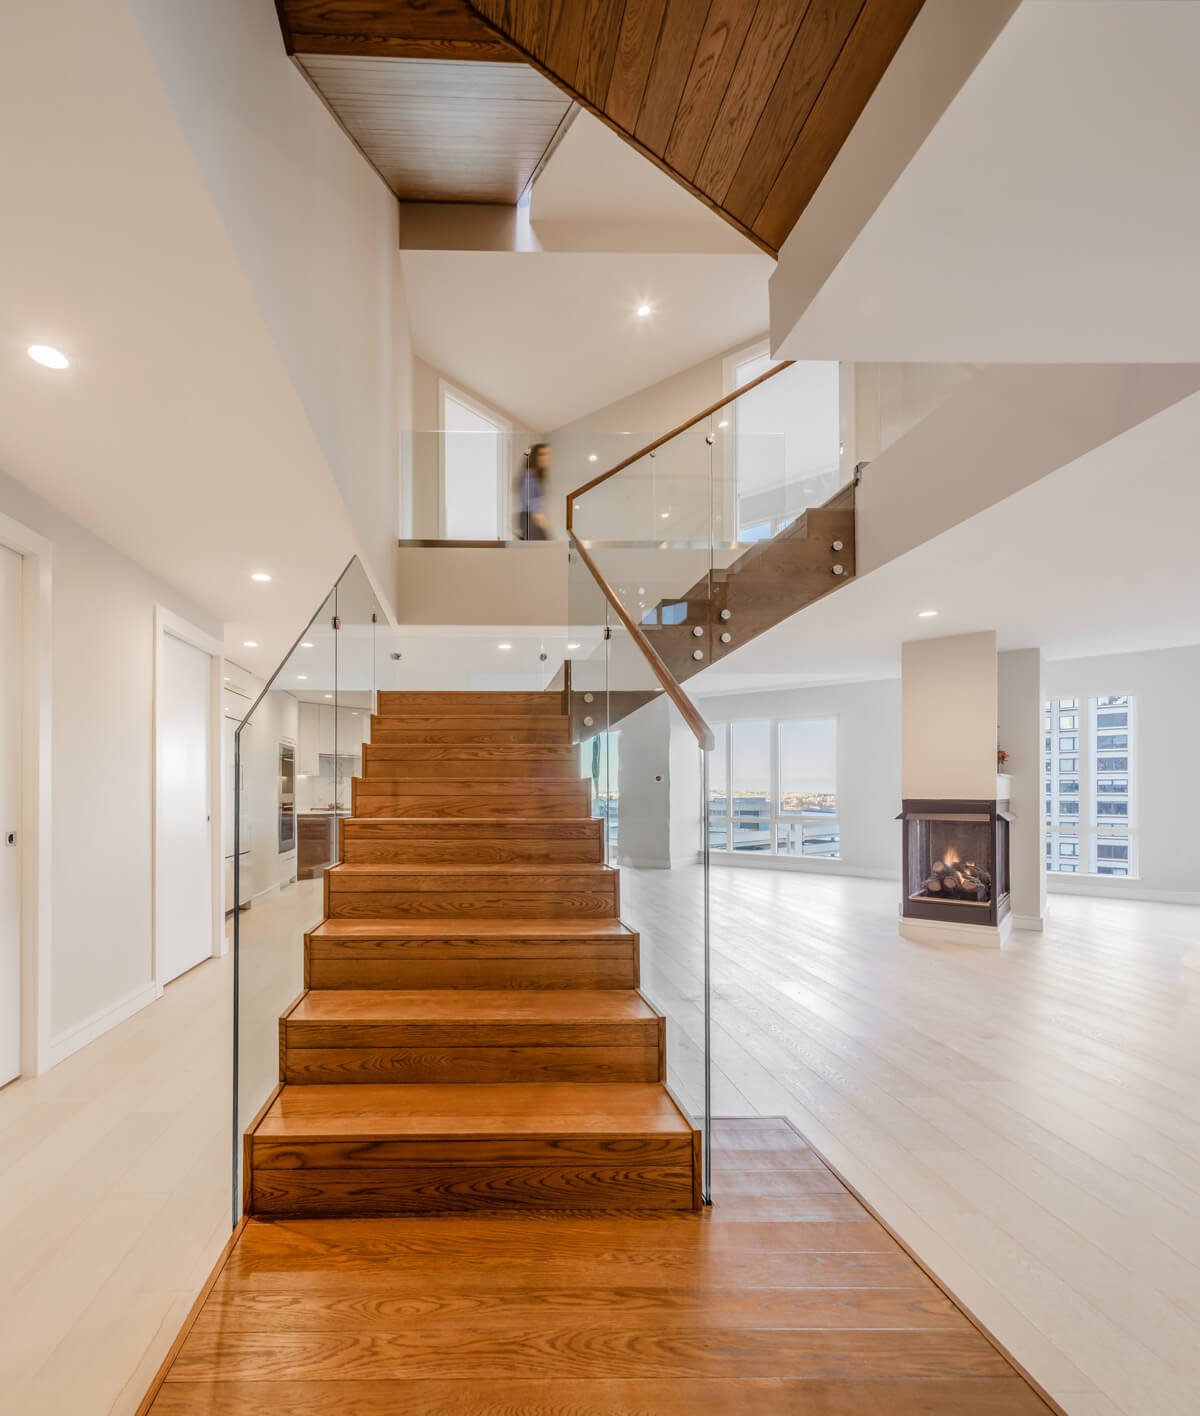 Angled wood and glass staircase in a white, empty apartment unit.